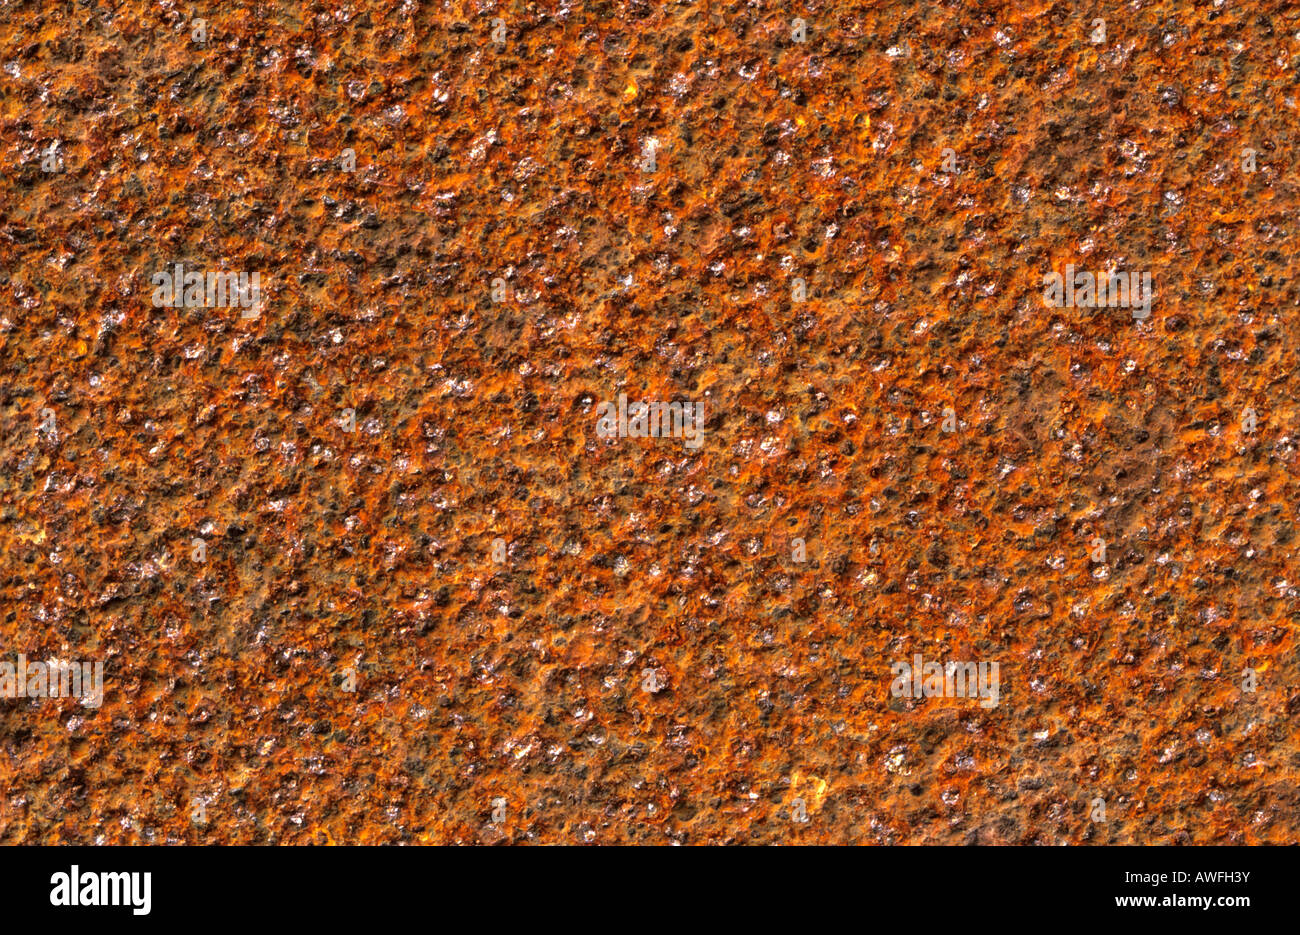 Rough-textured rust surface - Stock Image